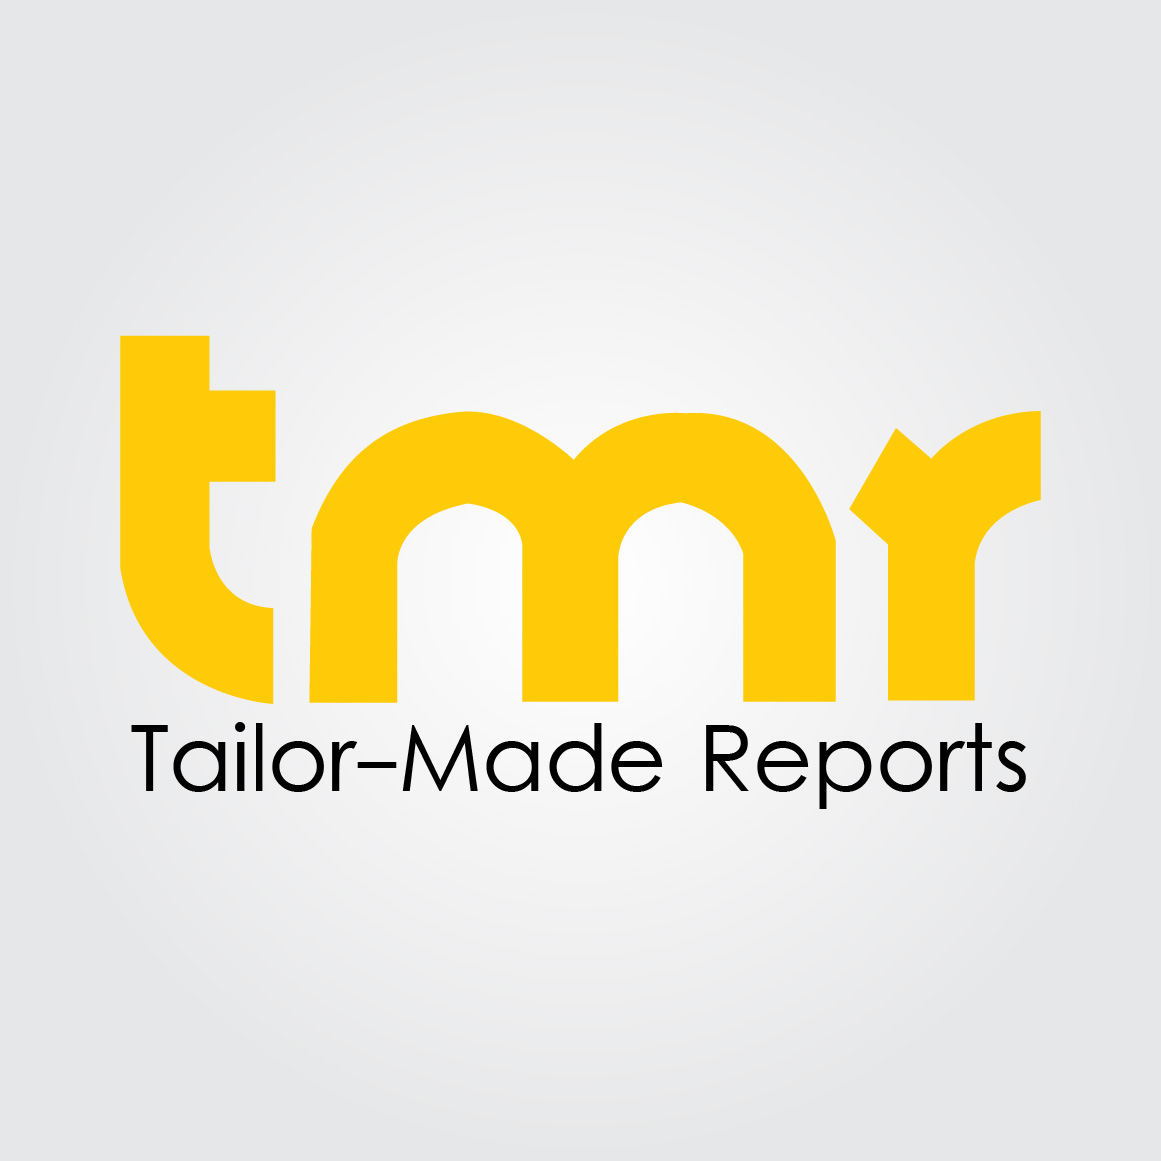 Asia Pacific Mattress Topper Market is estimated to come up as one of the leading regions for mattress toppers | TMR Research Study